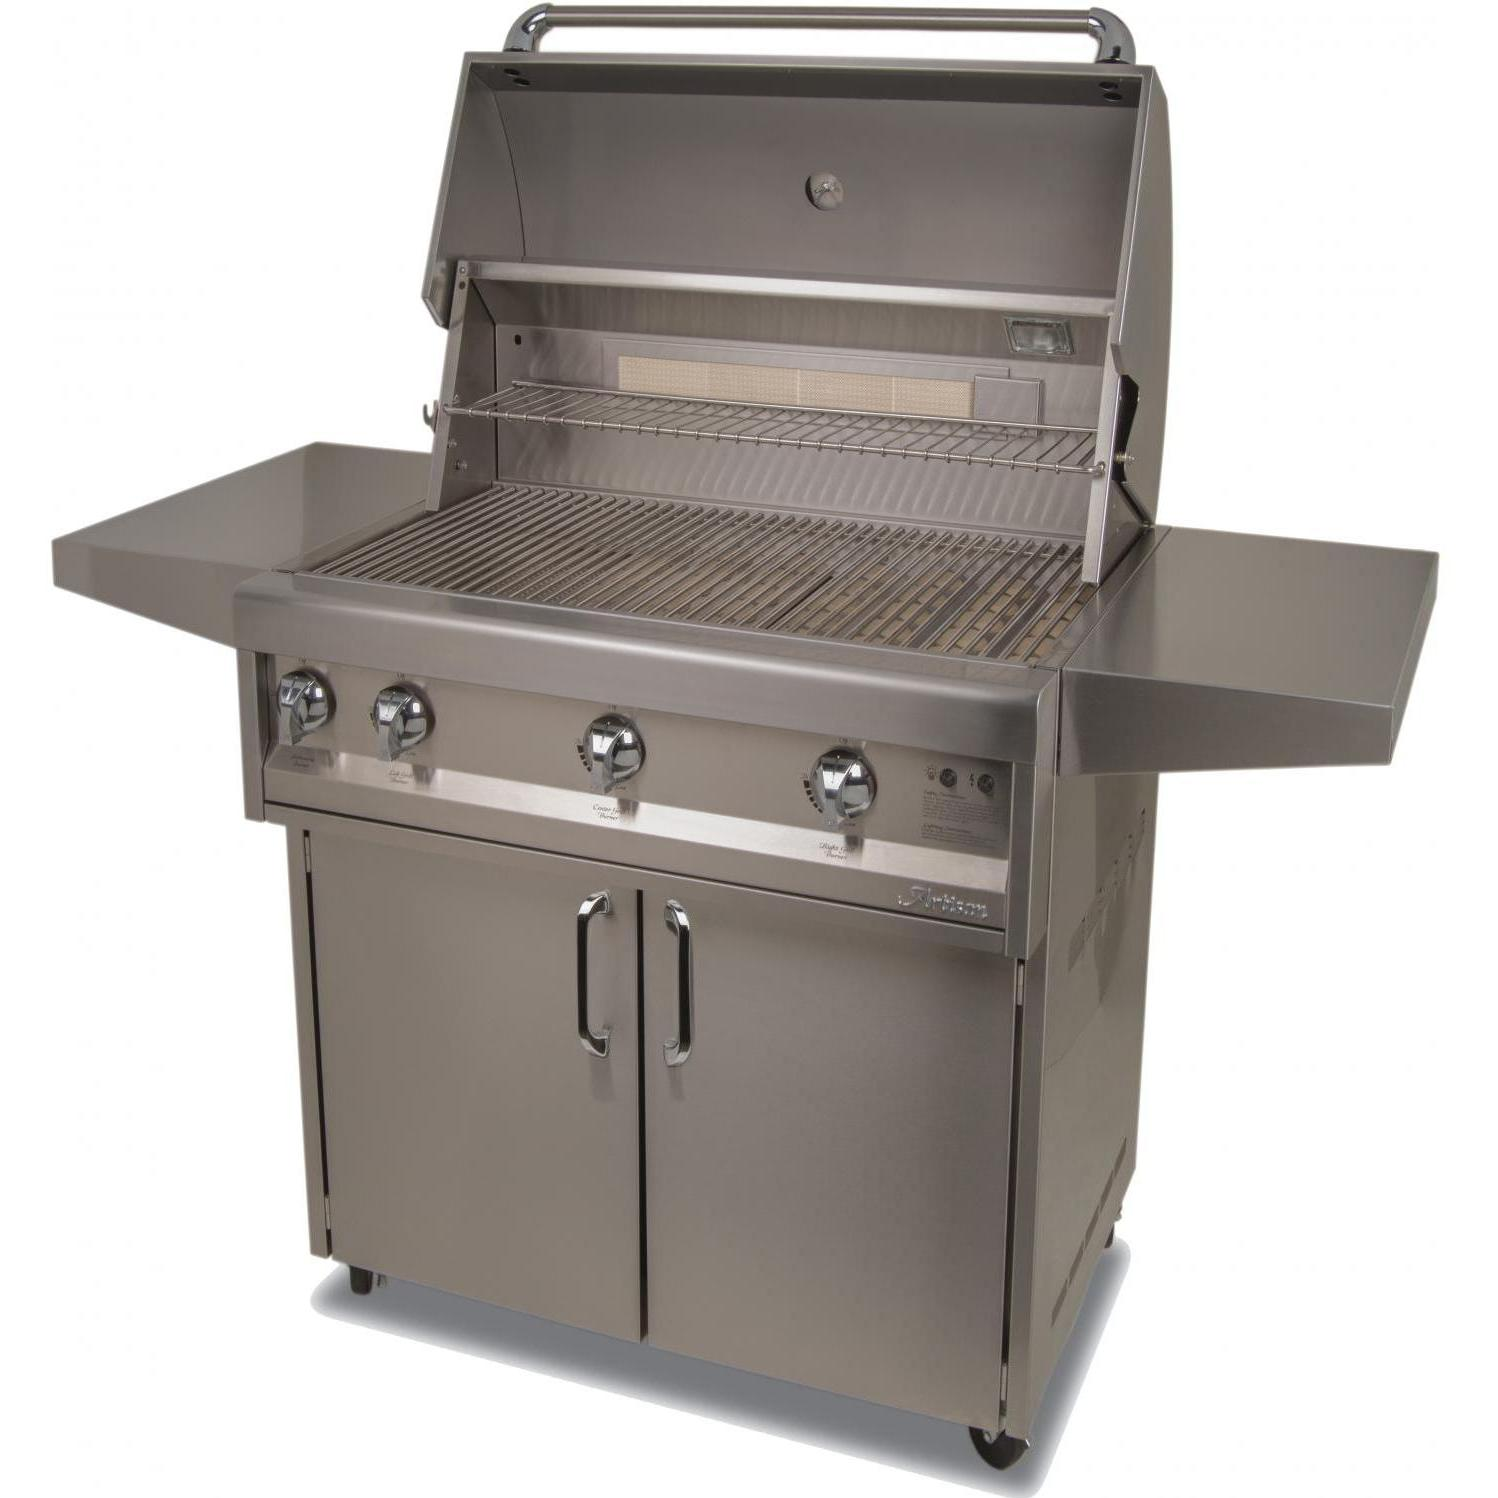 Artisan Classic By Alfresco 32-Inch Natural Gas Grill On Cart With Rotisserie 2872698